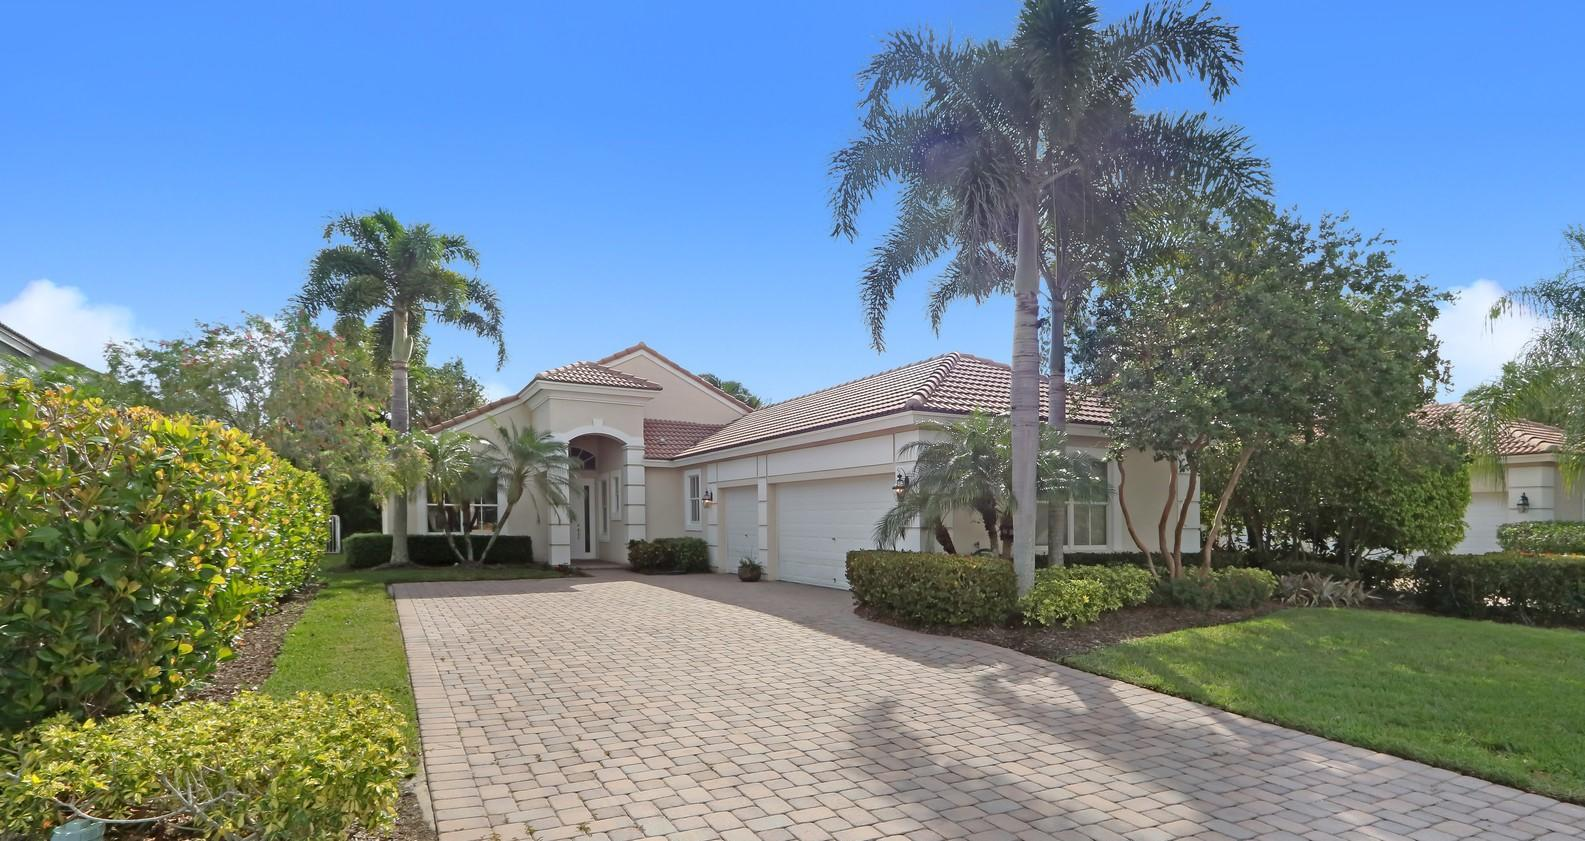 8185 Spyglass Drive, West Palm Beach, Florida 33412, 2 Bedrooms Bedrooms, ,2.1 BathroomsBathrooms,A,Single family,Spyglass,RX-10523355